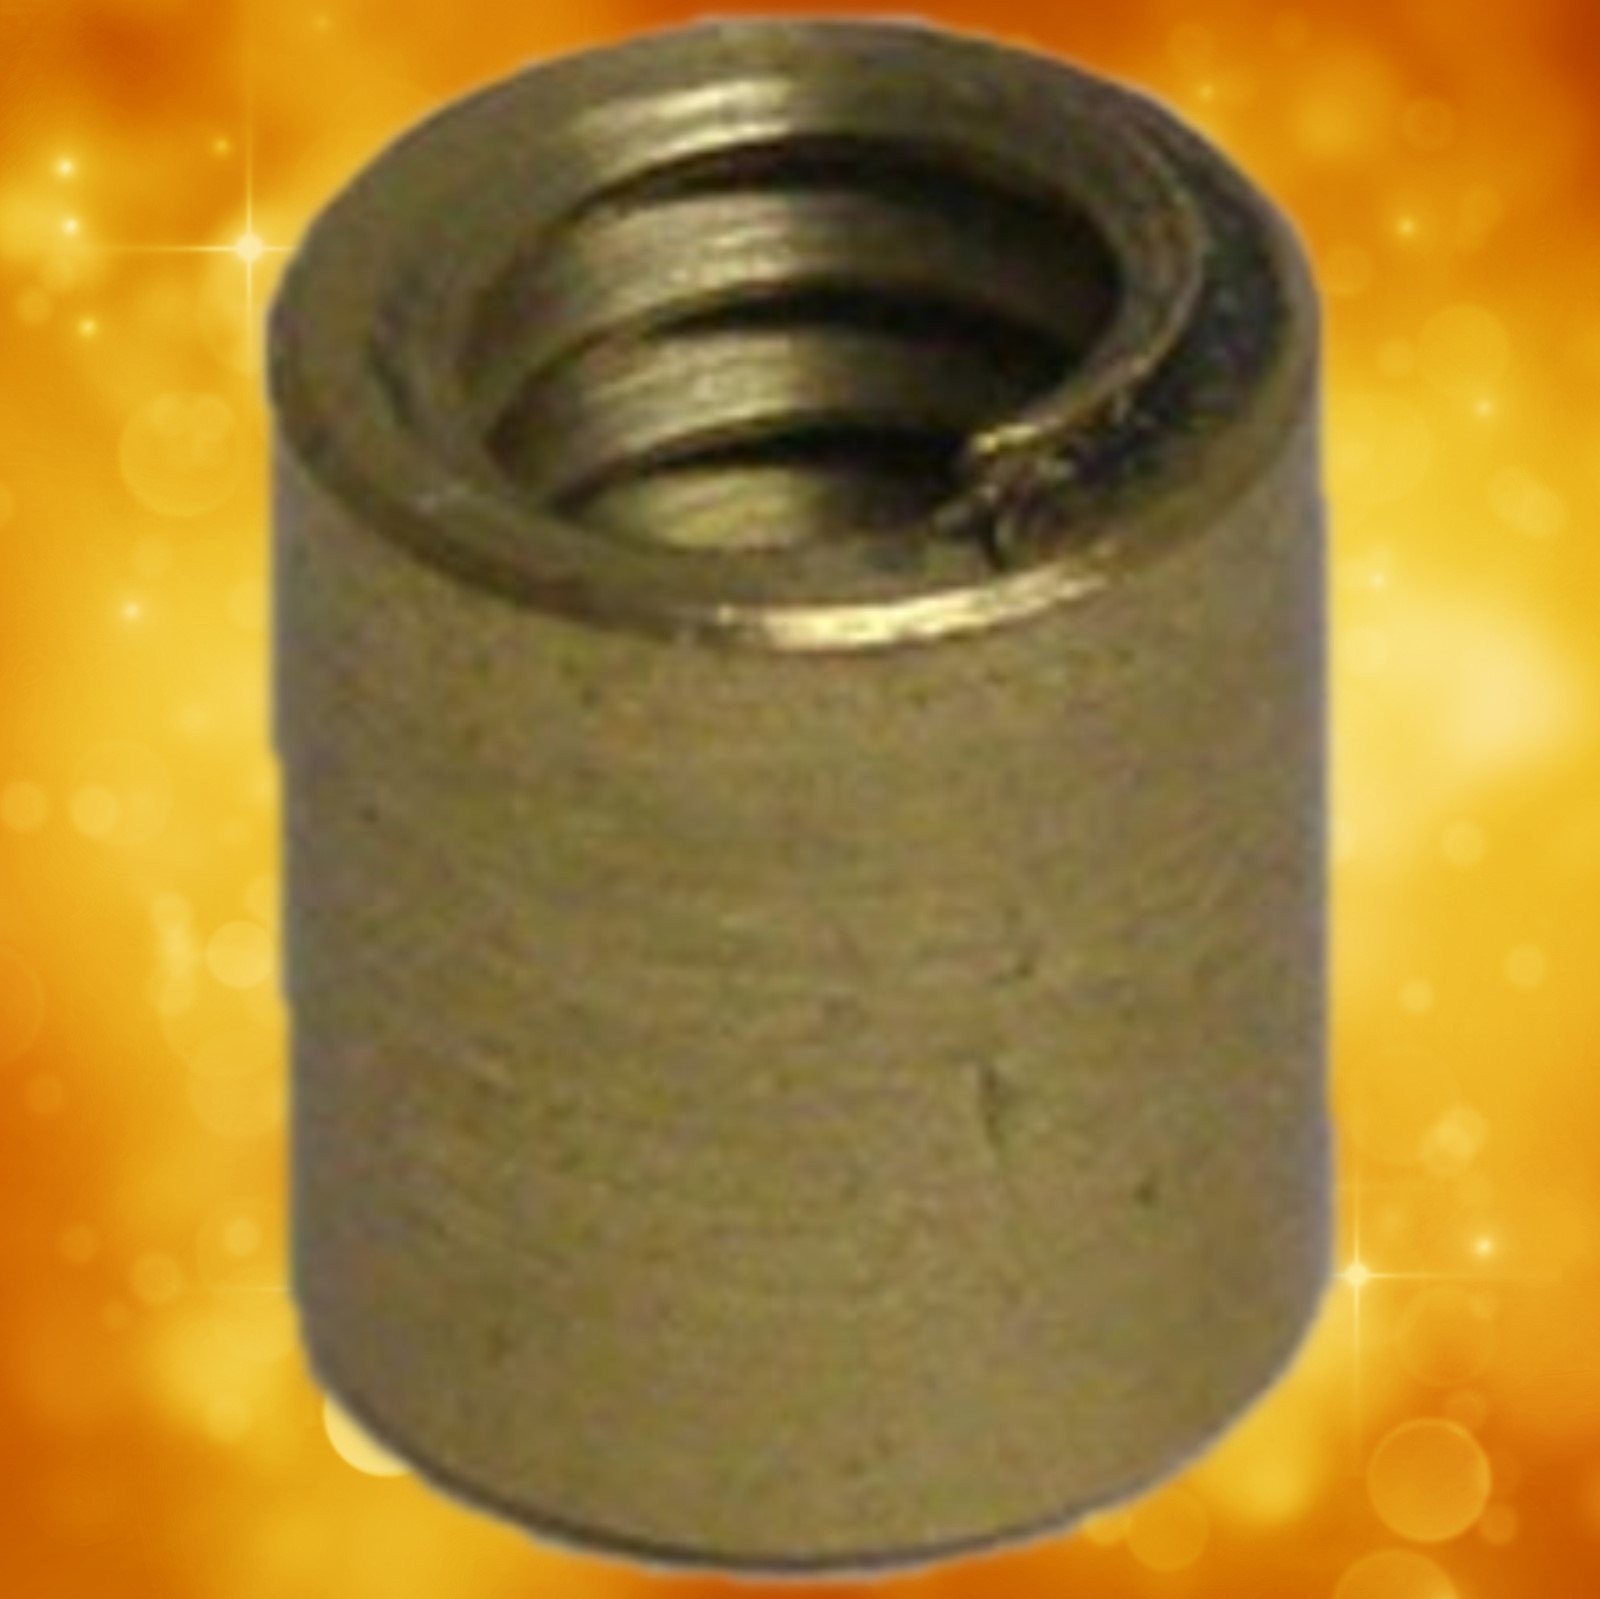 Sherline Tool Part 50200 Sherline Nut, Y-zxis 50200